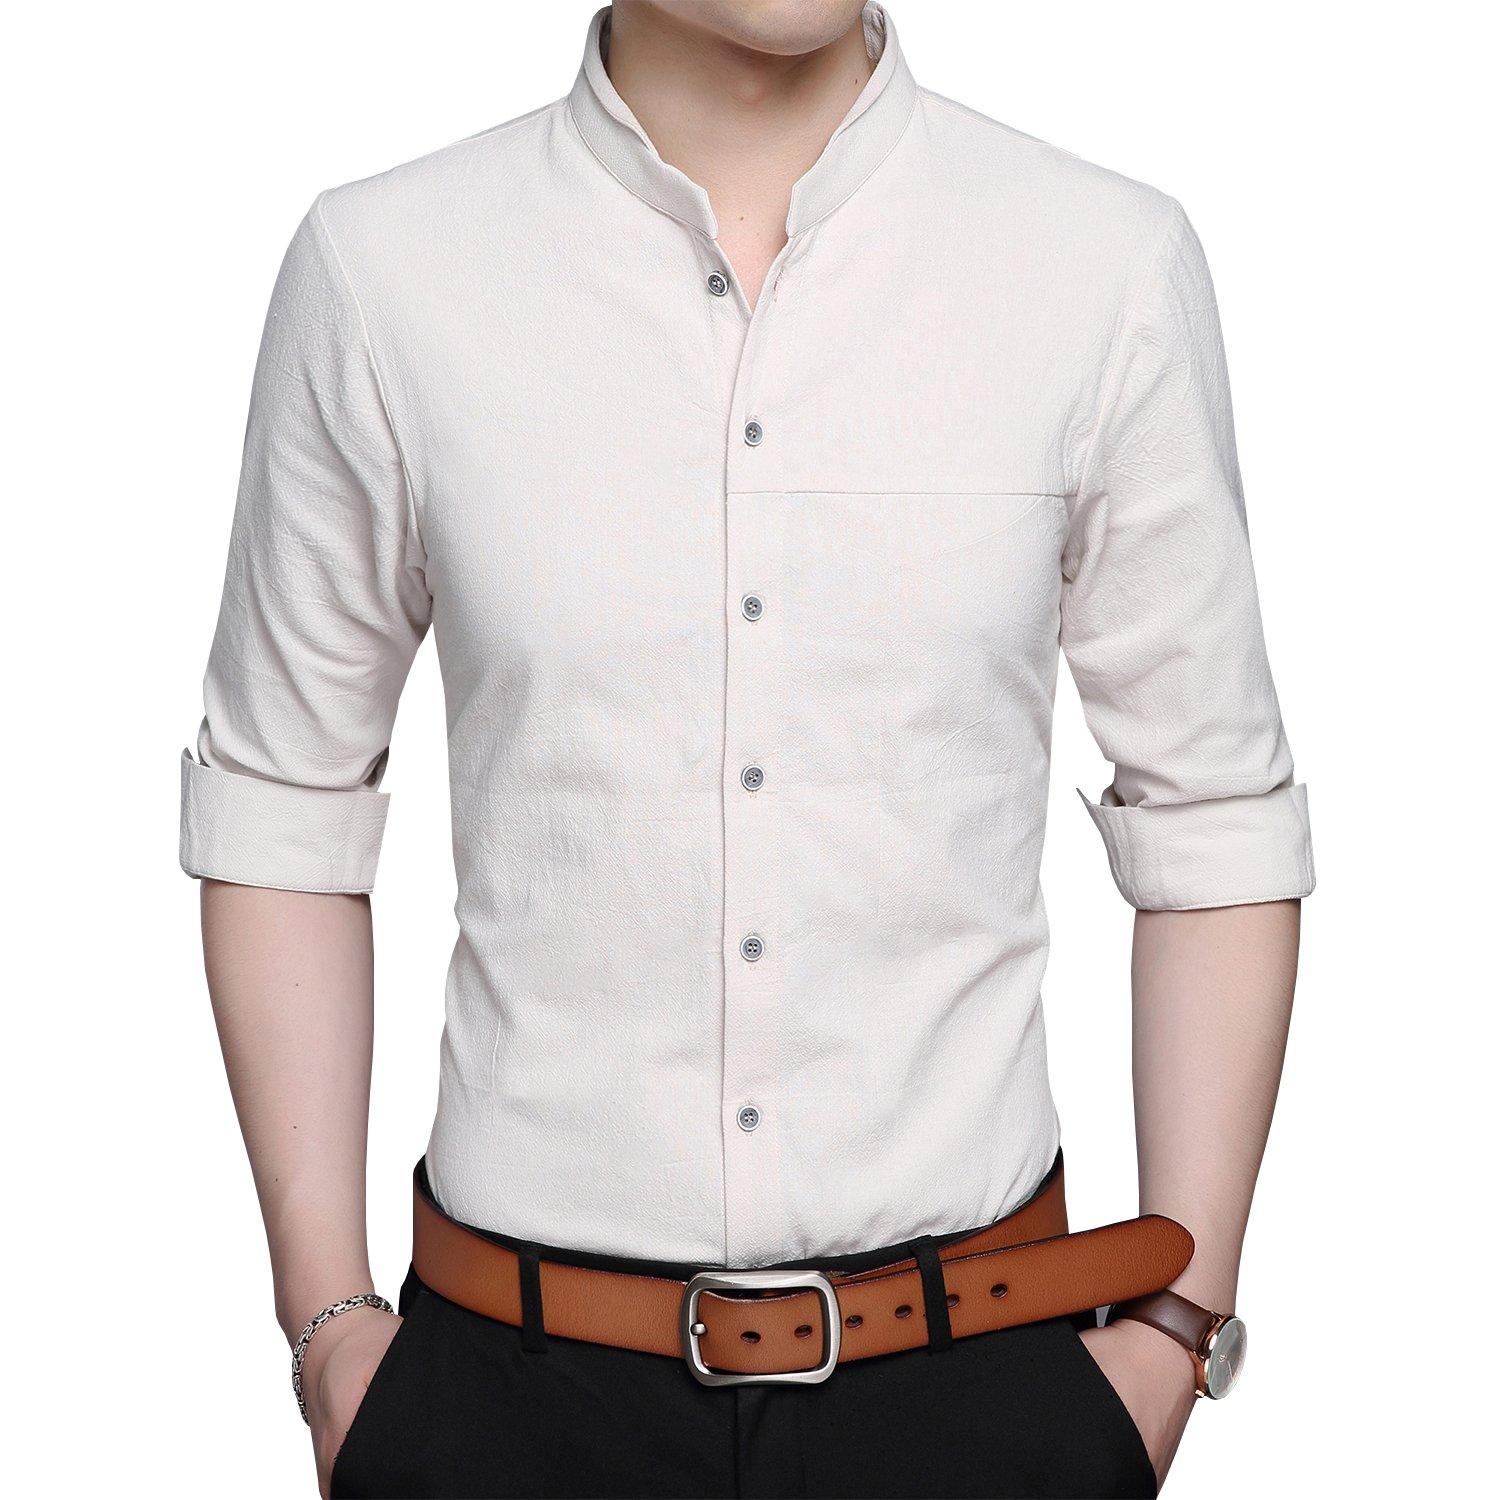 767cea4729eb Stand collar design shirt. Money-back satisfaction guarantee. Good quality  fabric, and making style make you feel good and comfortable ...